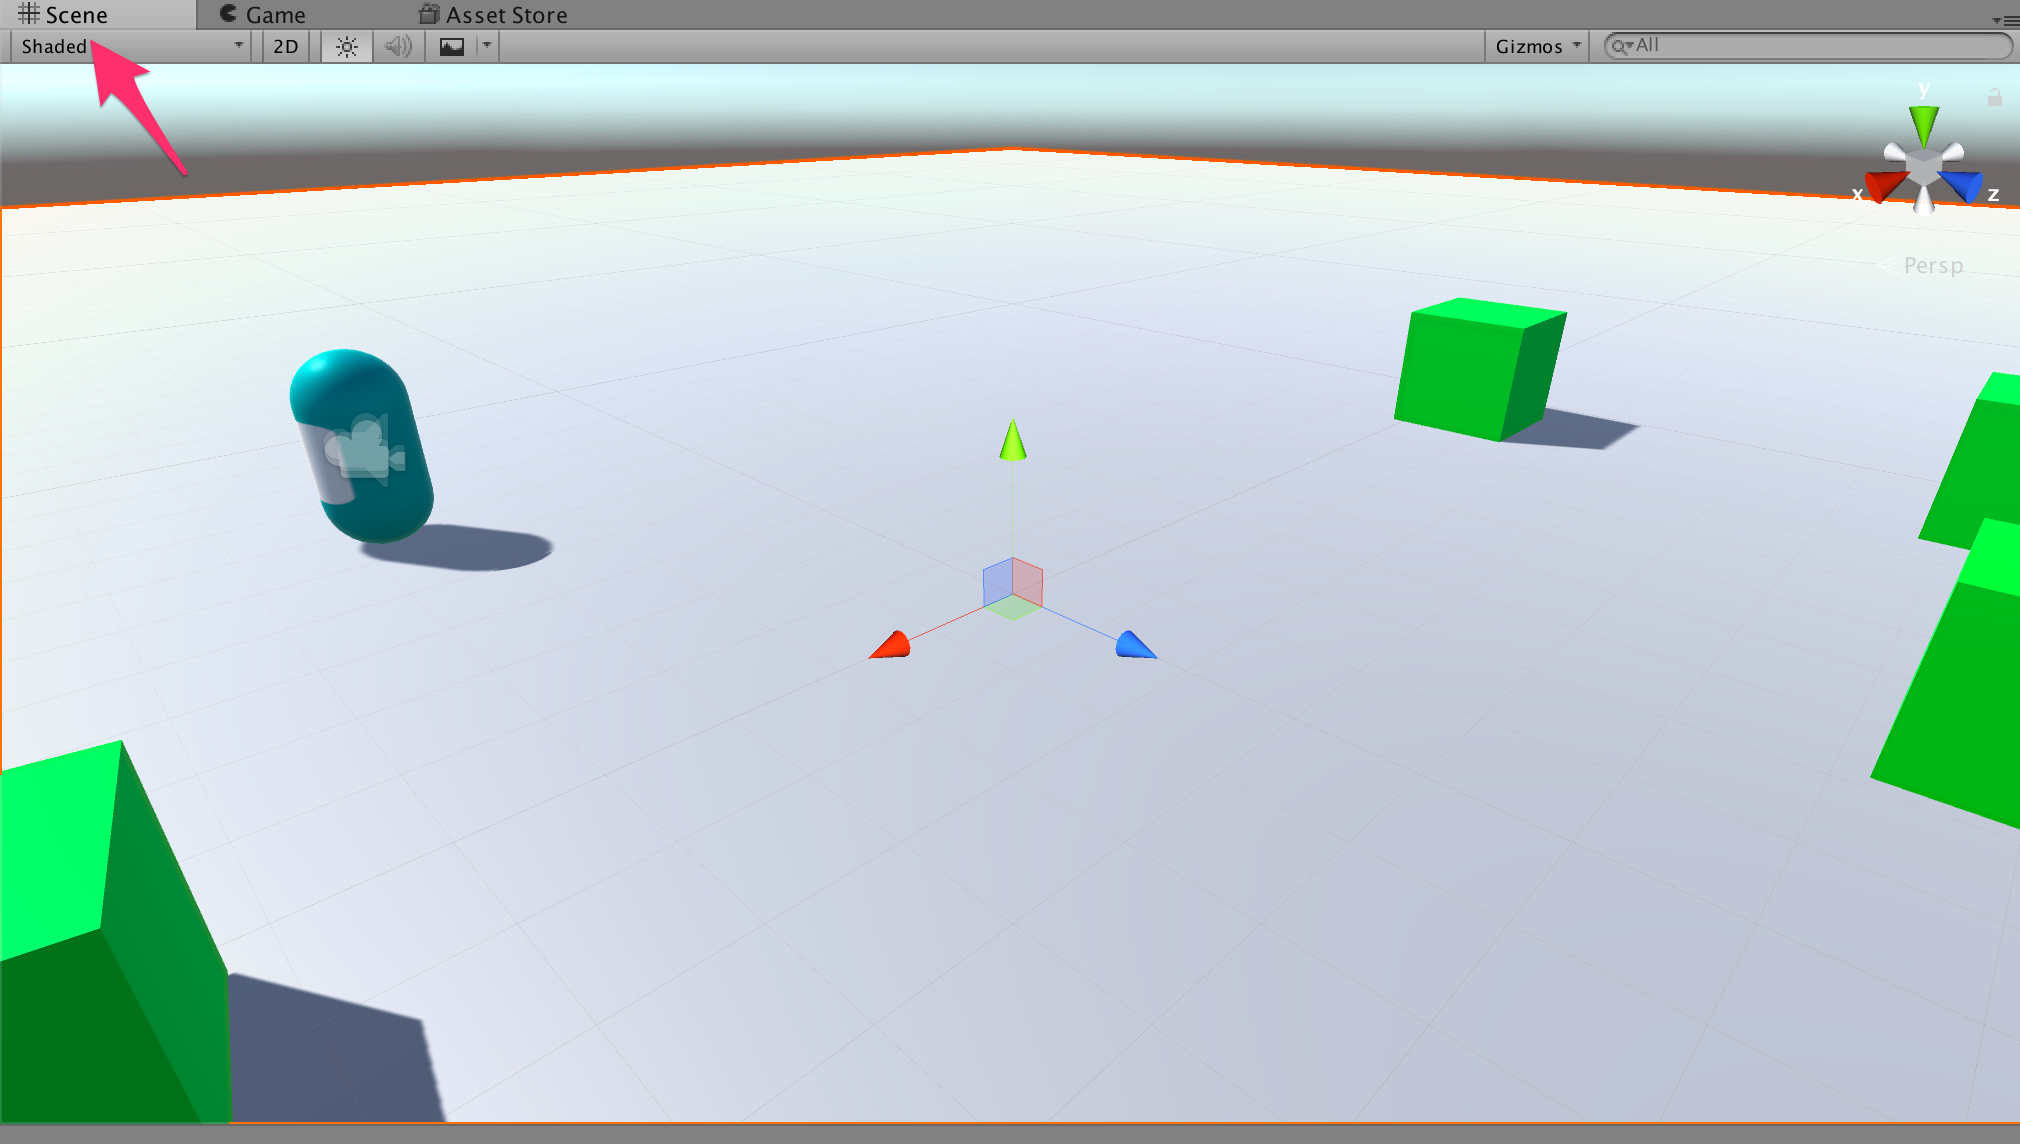 Unity_5_5_0f3_Personal__64bit__-_sample_unity_-_unity-sample-environment_-_PC__Mac___Linux_Standalone__Personal___OpenGL_4_1_.png